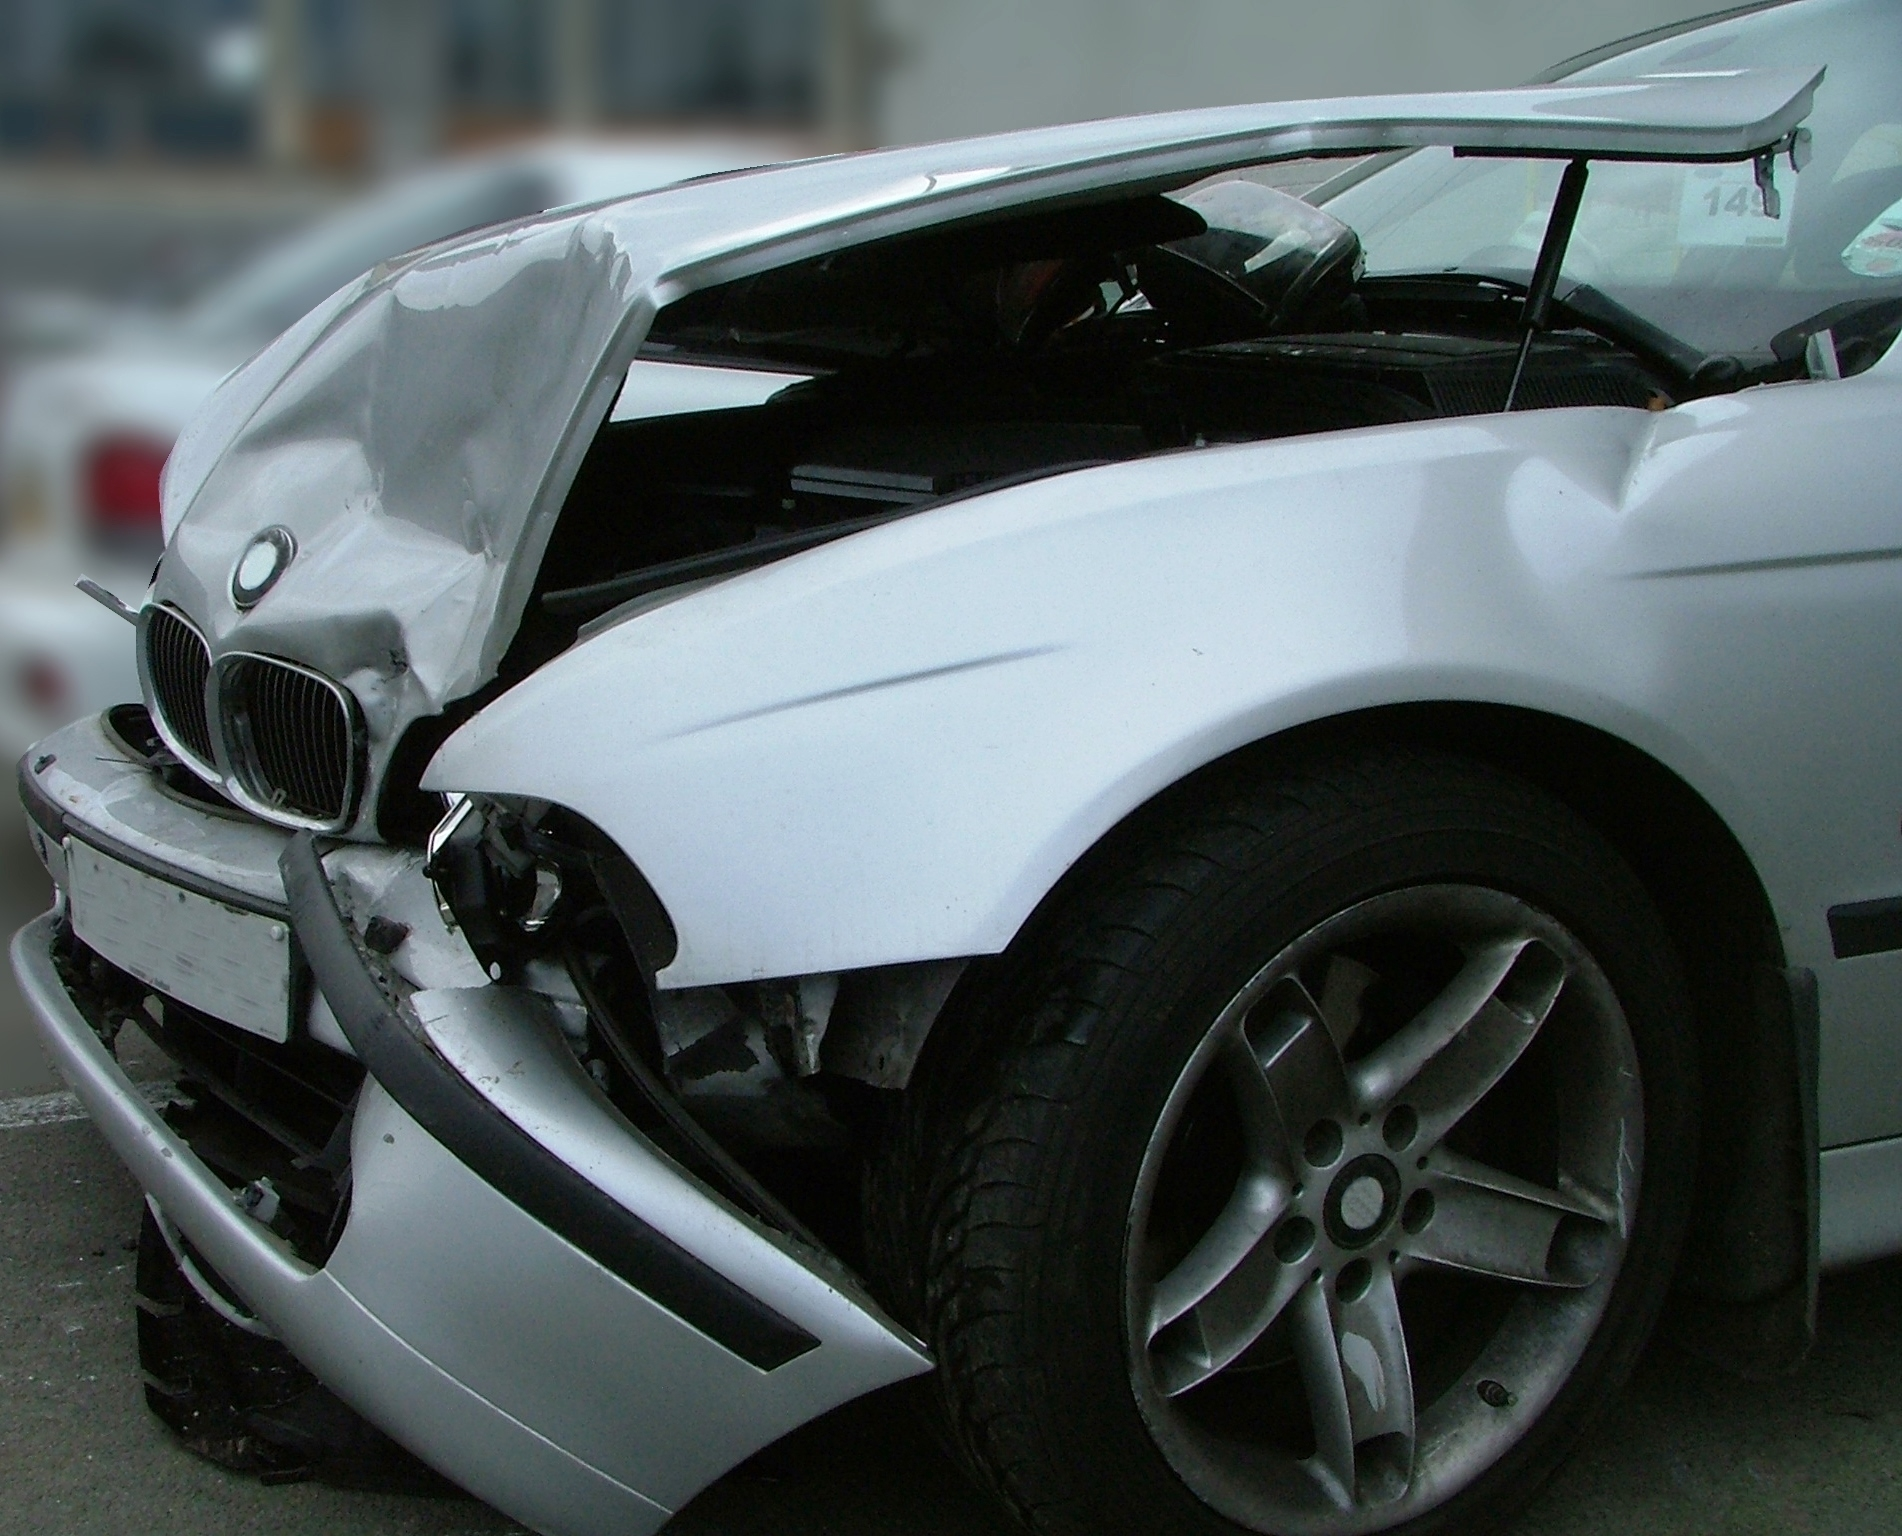 Hi-Tech Paint & Collision Ltd in Medicine Hat: Car accident